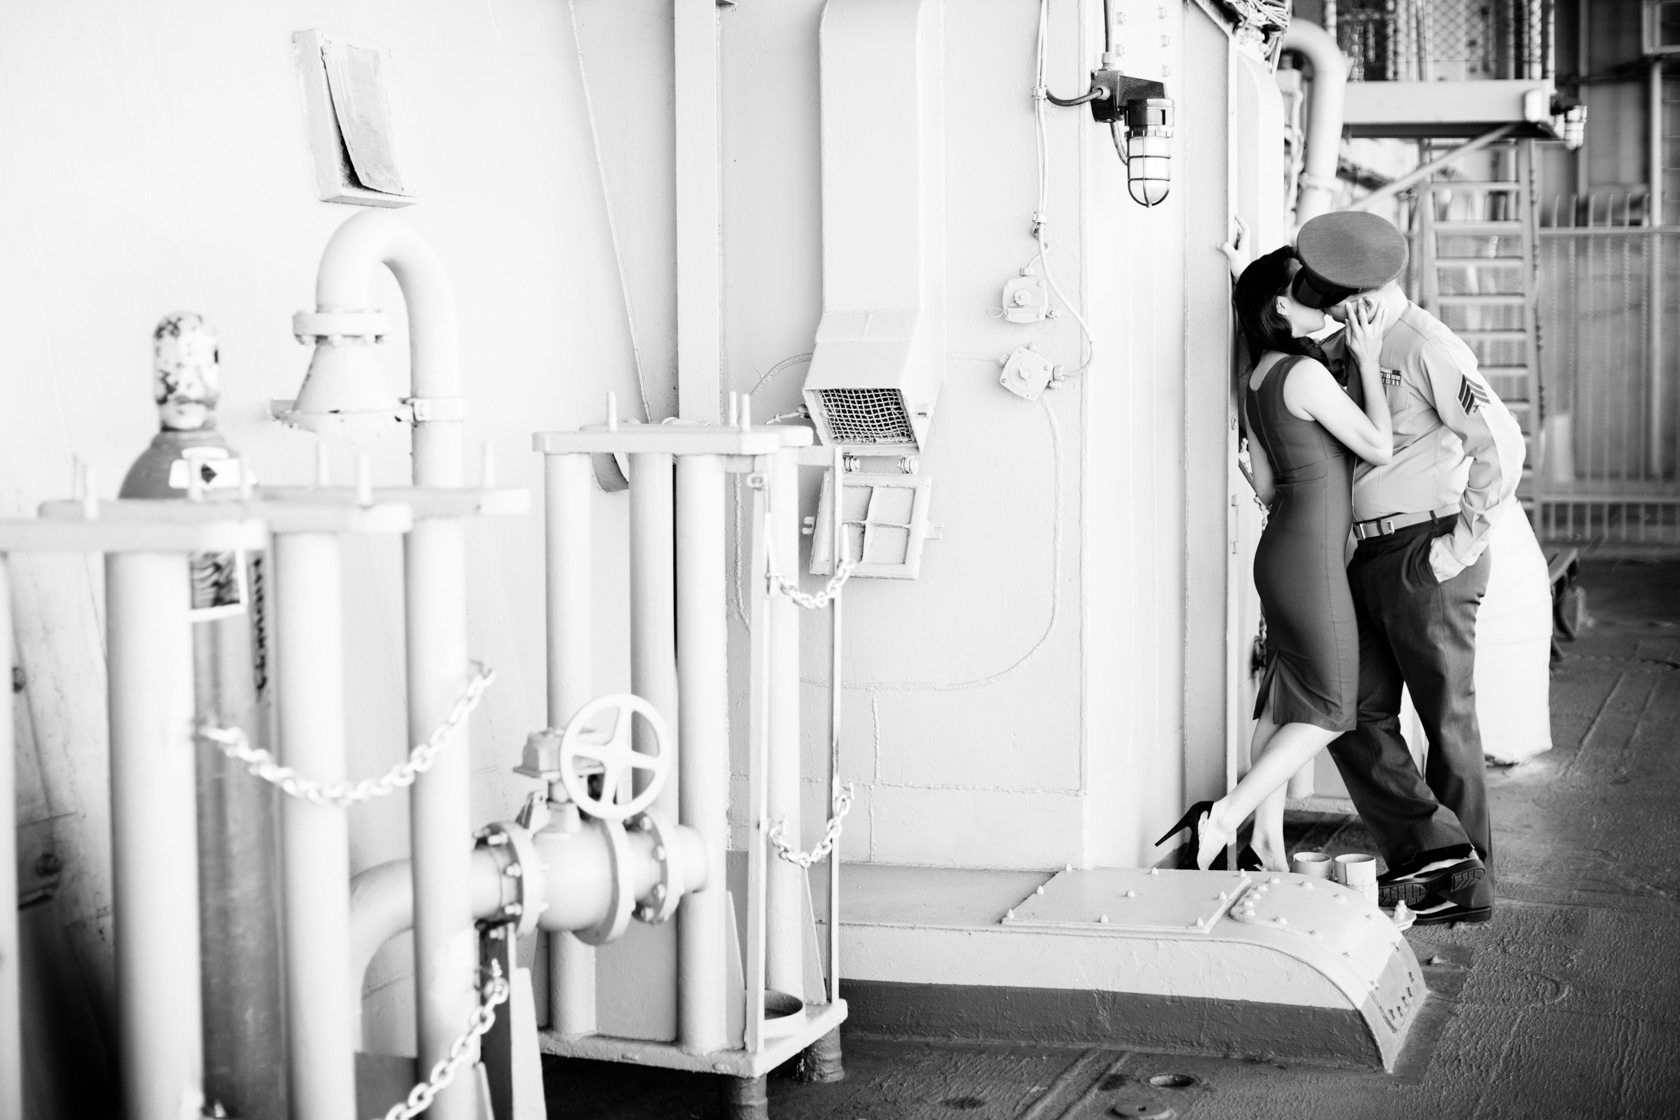 USS_Midway_Engagement_Session_15.jpg